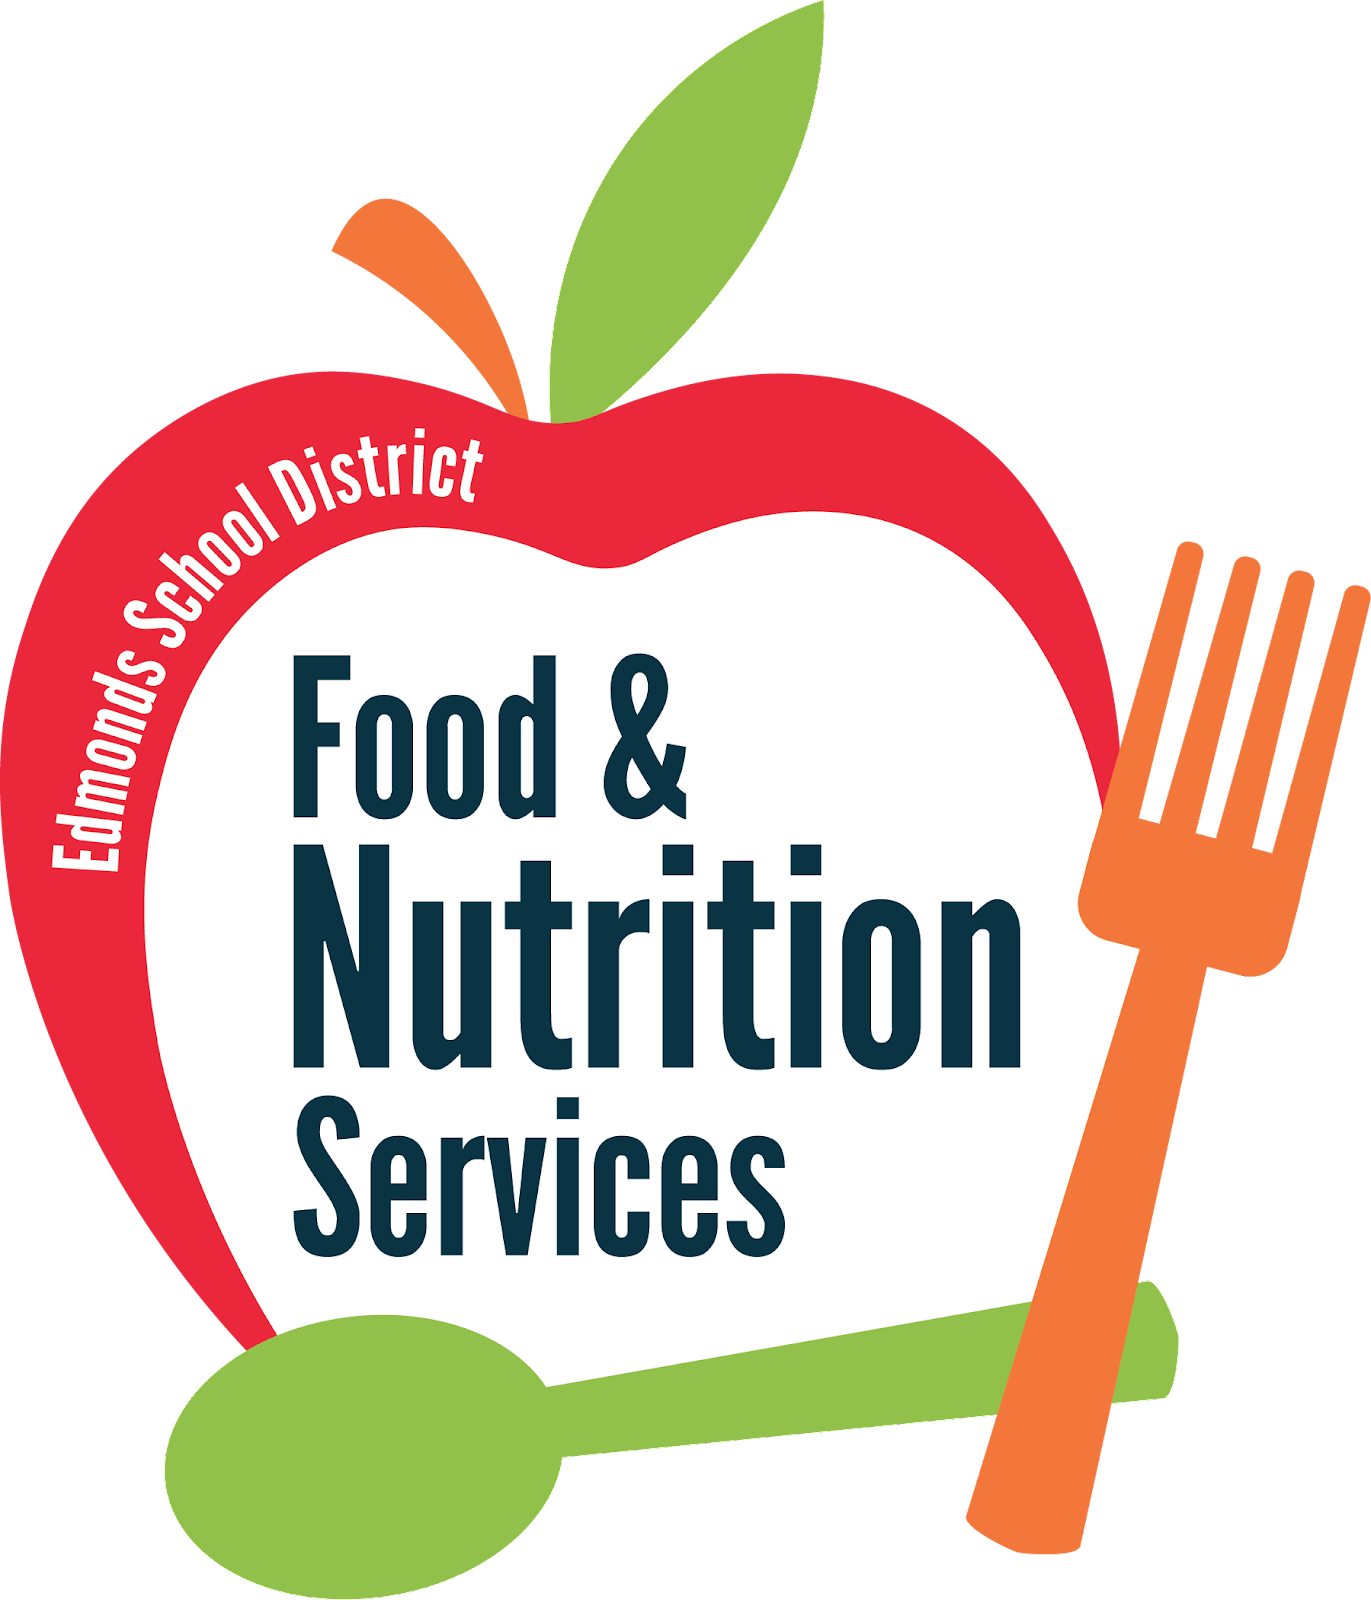 Food & Nutrition Services